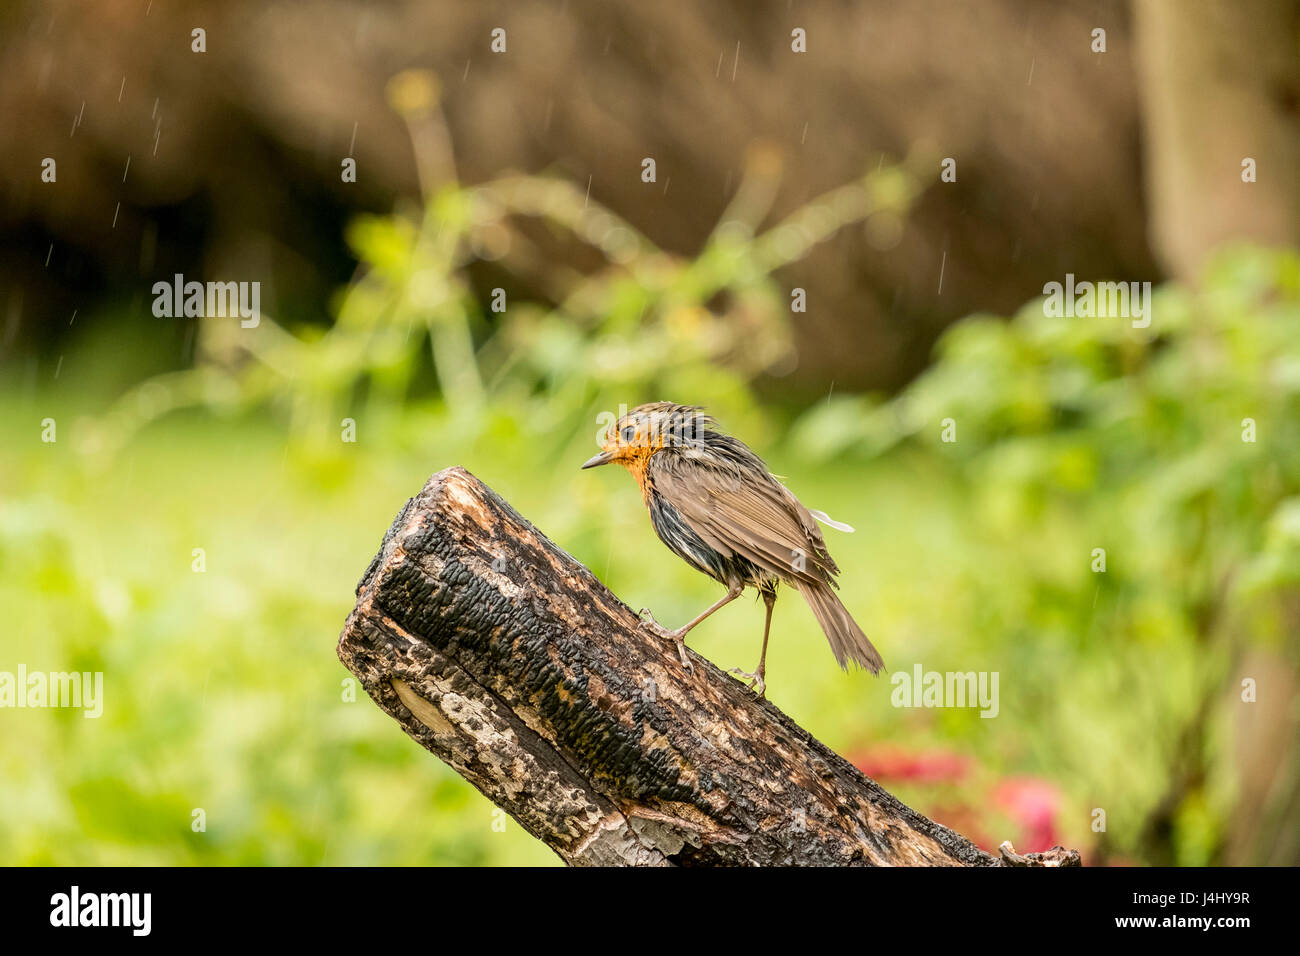 European robin erithacus rubella standing on log in domestic garden in the pouring rain - Stock Image